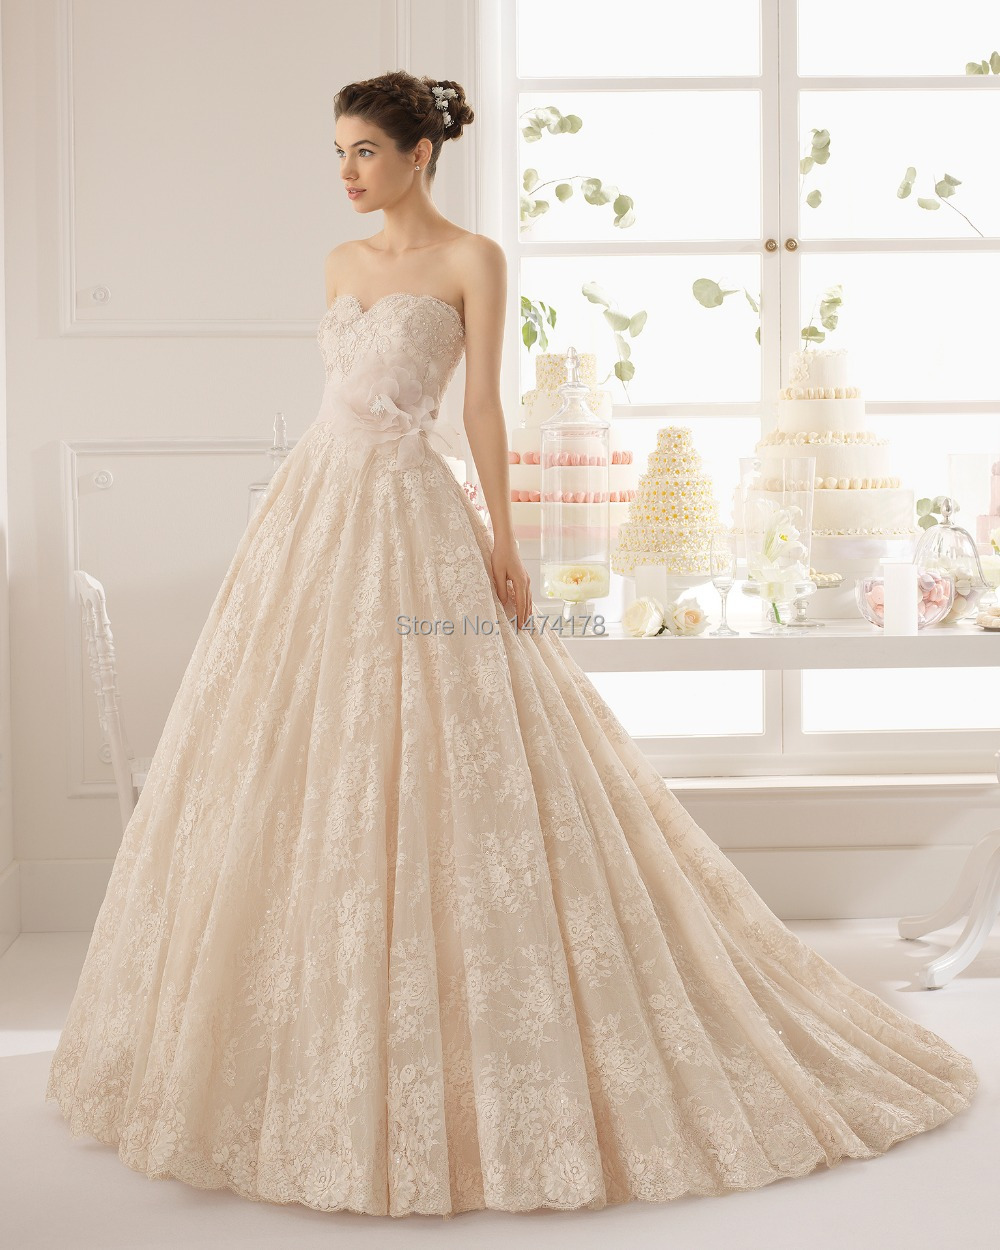 tulle princess style wedding dress princess style wedding dress Strapless Tulle And Satin Lace Appliques Princess Designer Wedding Dress